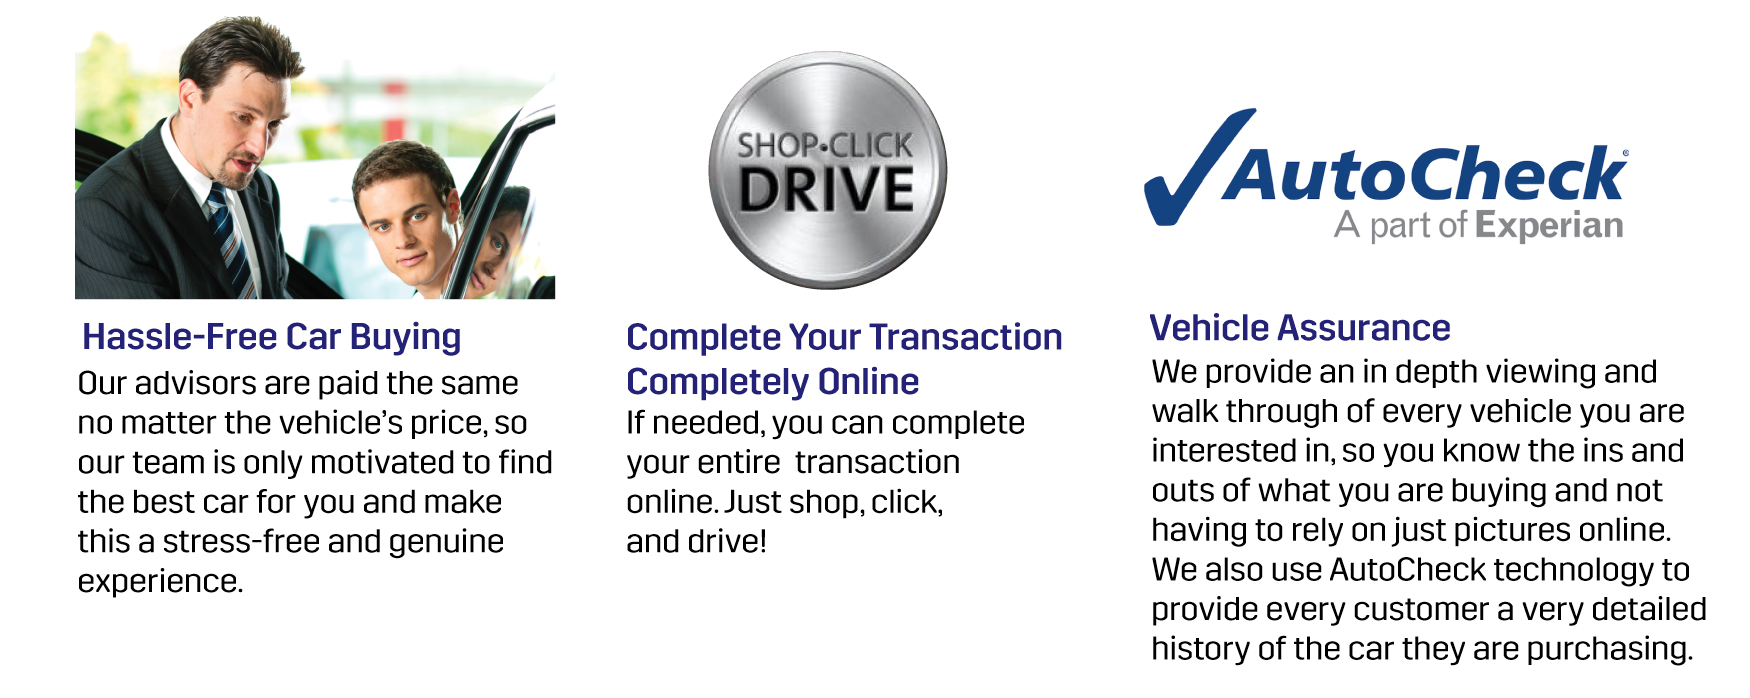 Hassle-Free Car Buying, Complete Your Transaction Online, Vehicle Assurance